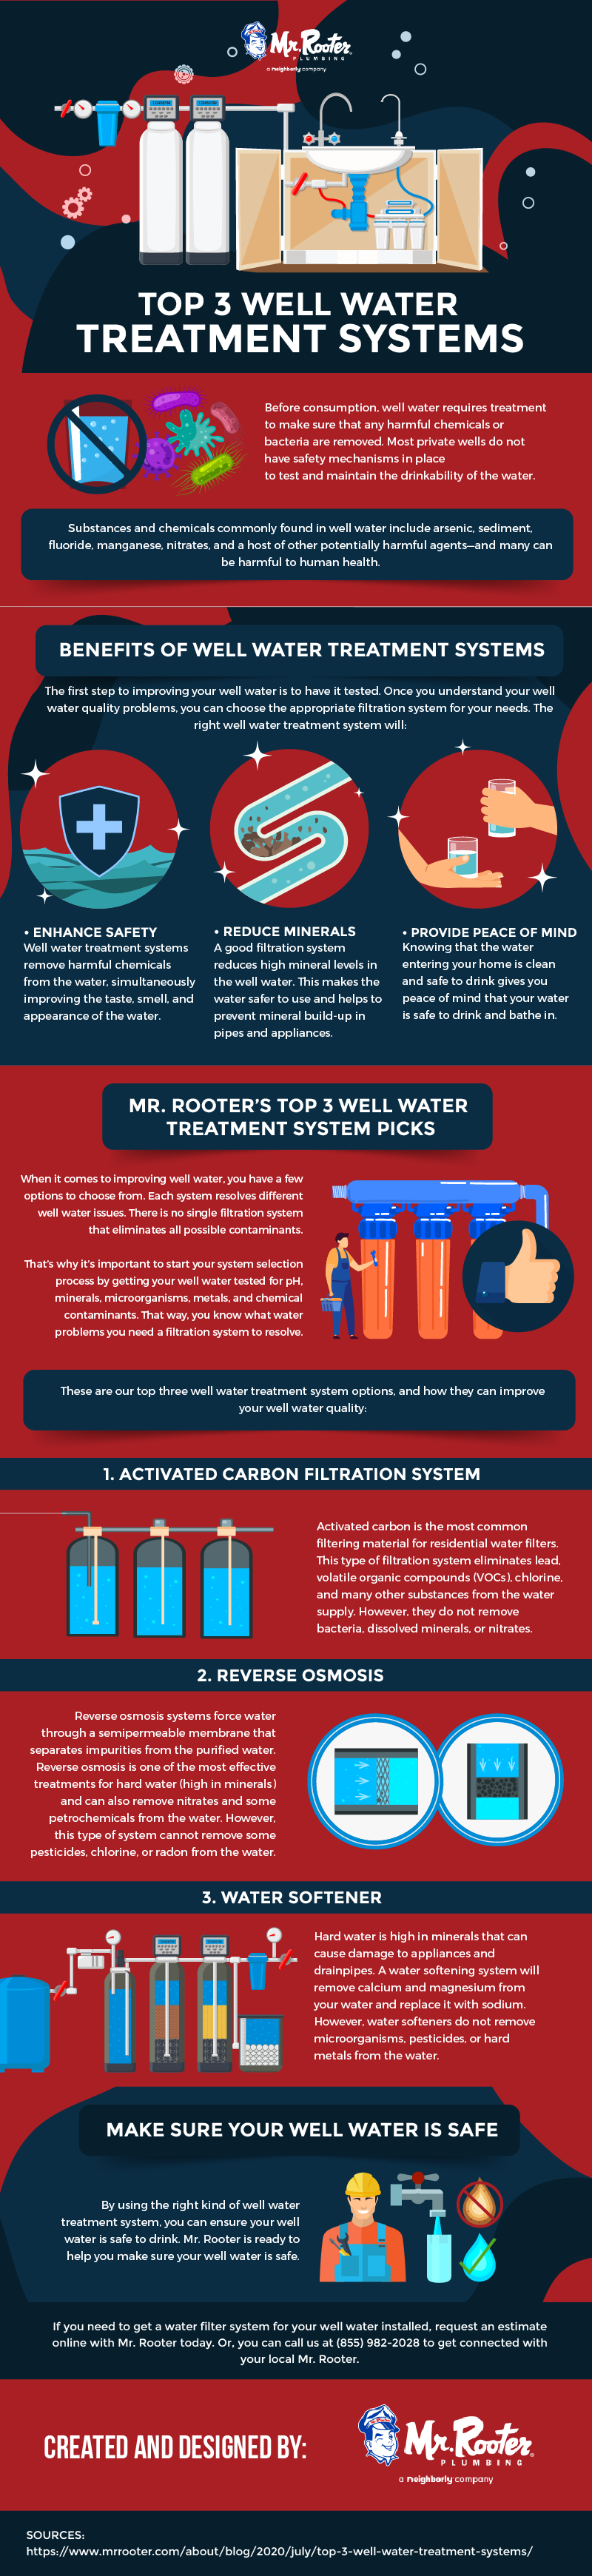 Top 3 Well Water Treatment Systems